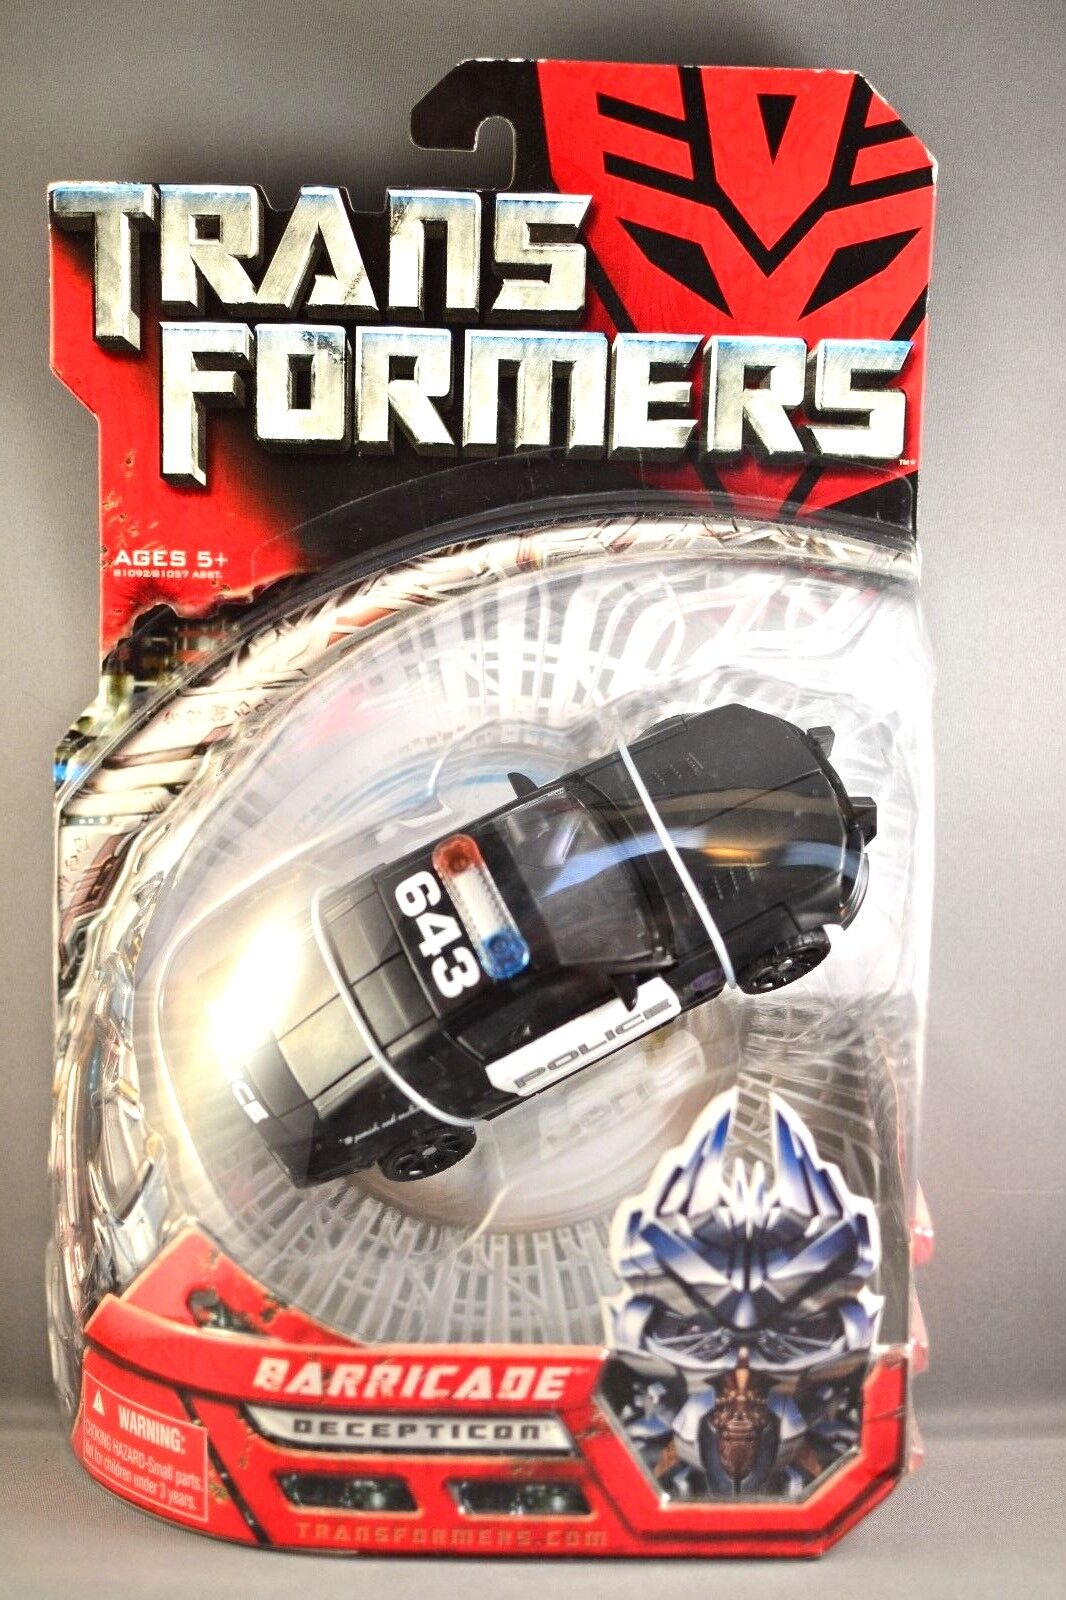 Hasbro Transformers Movie Deluxe Barricade Action Figure 2007 BRAND NEW SEALED